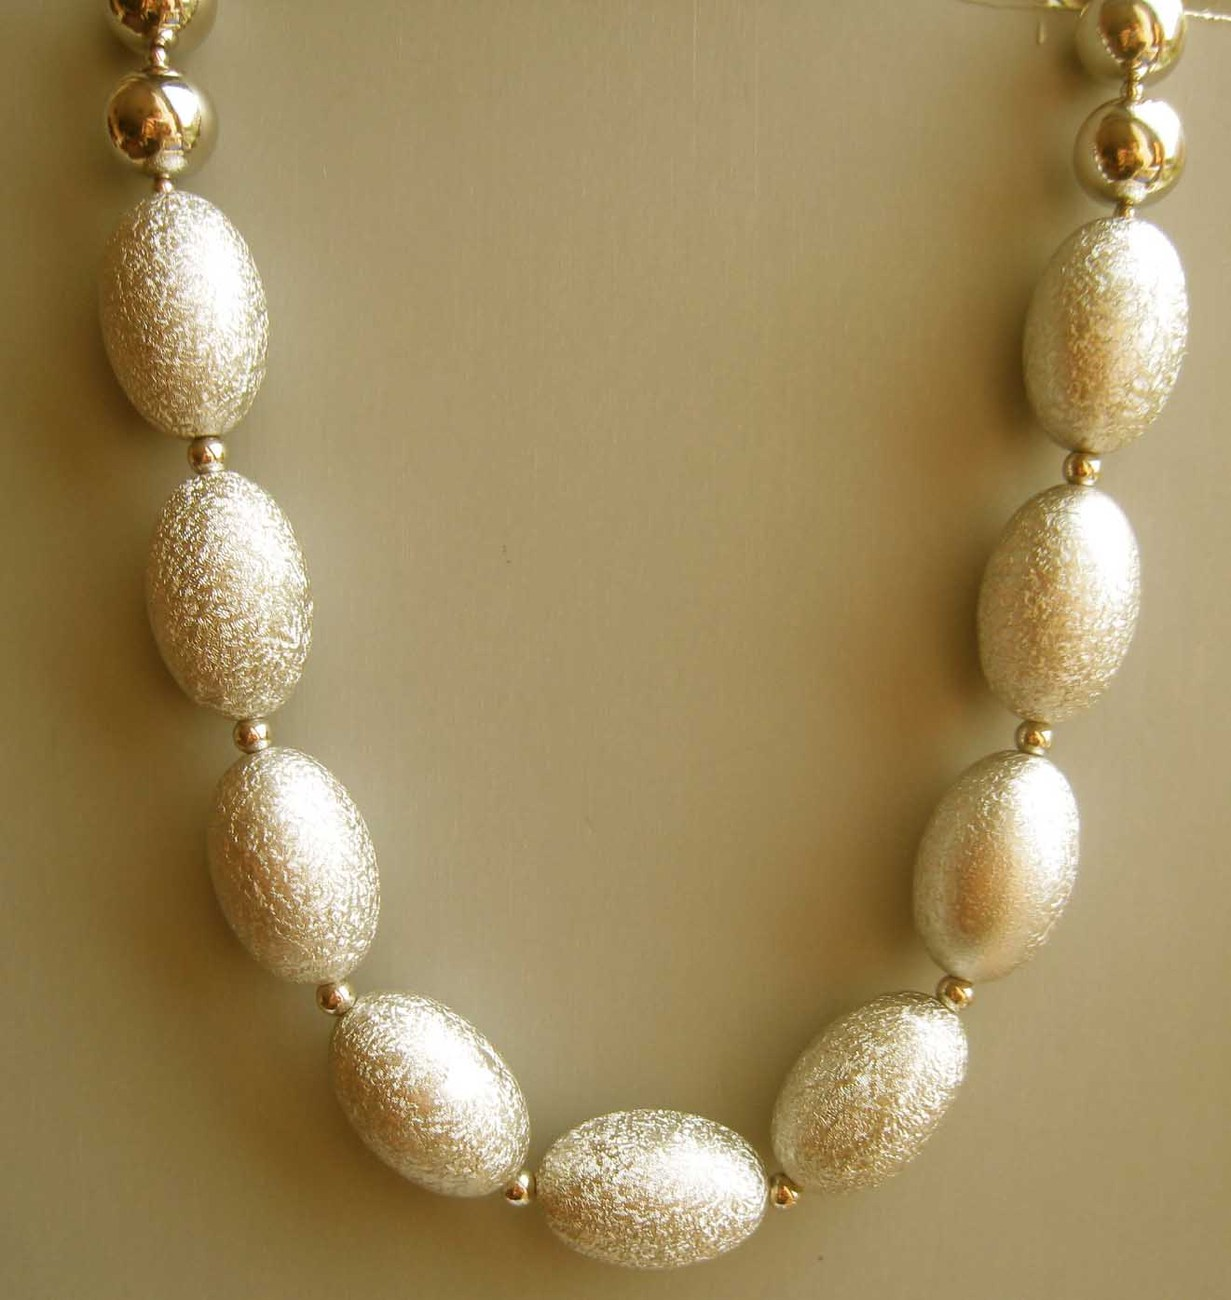 Special chunky gold fashion statement adjustable necklace -